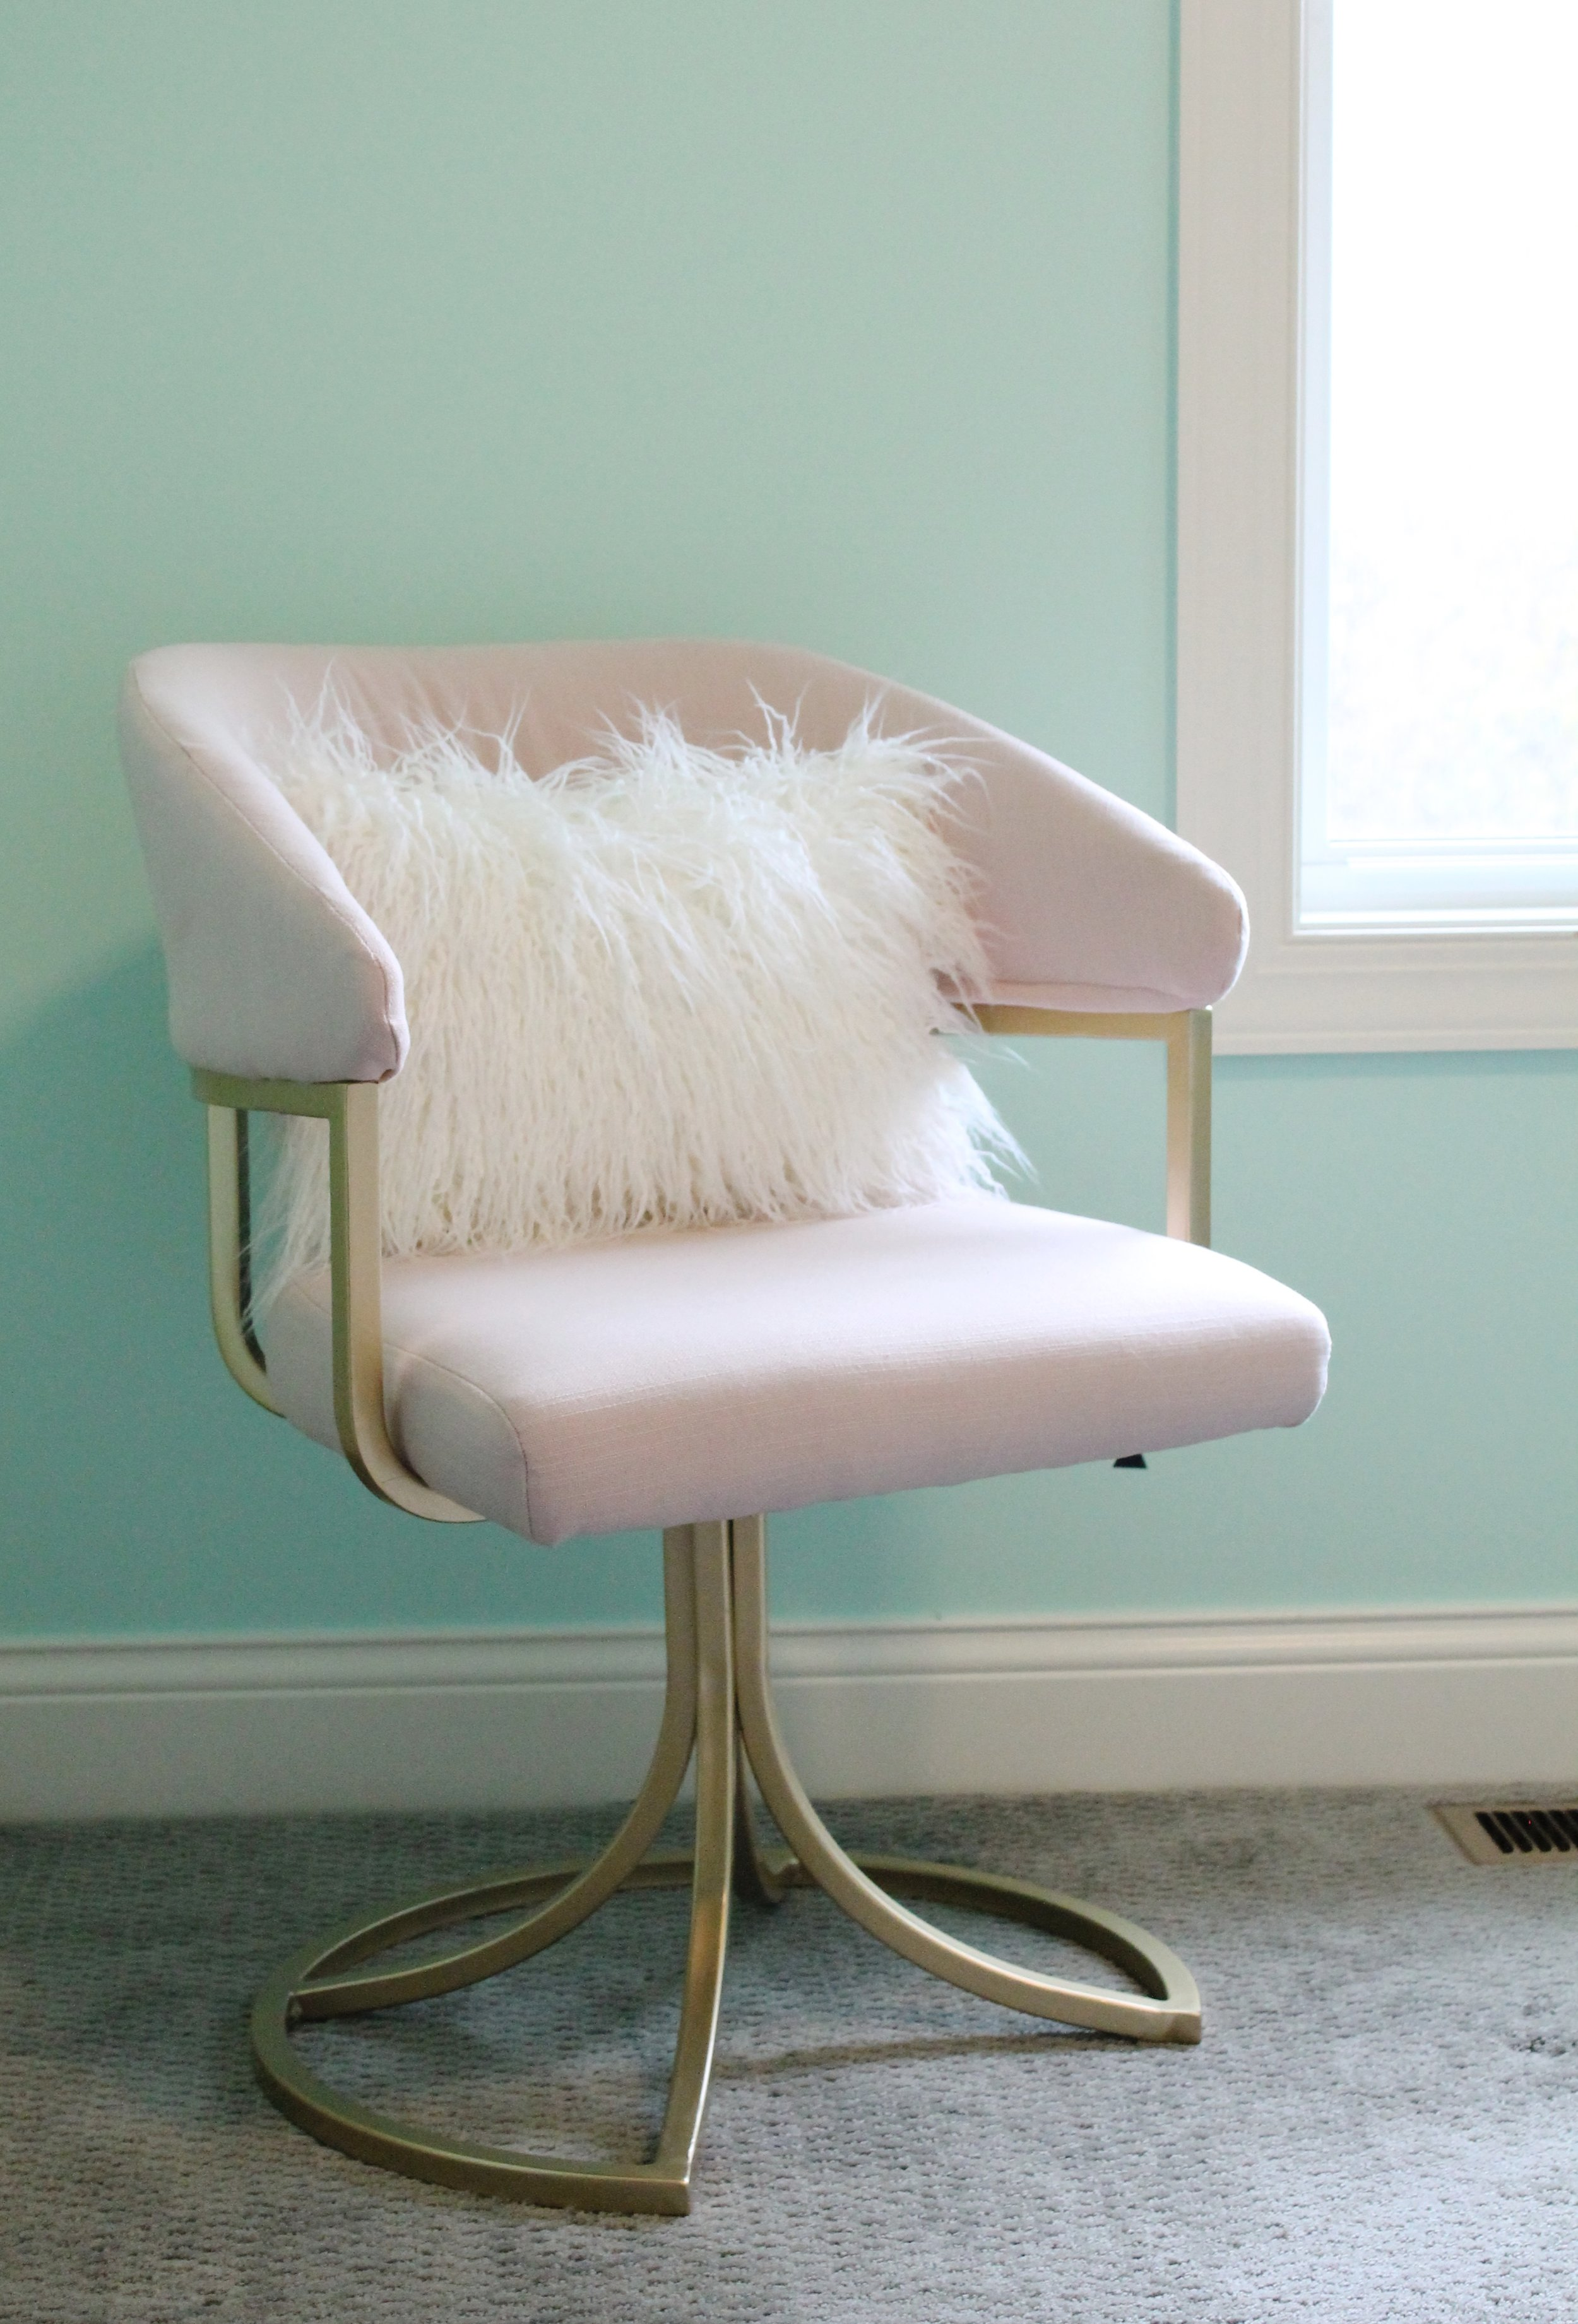 Pink and Gold Chair with mint walls.